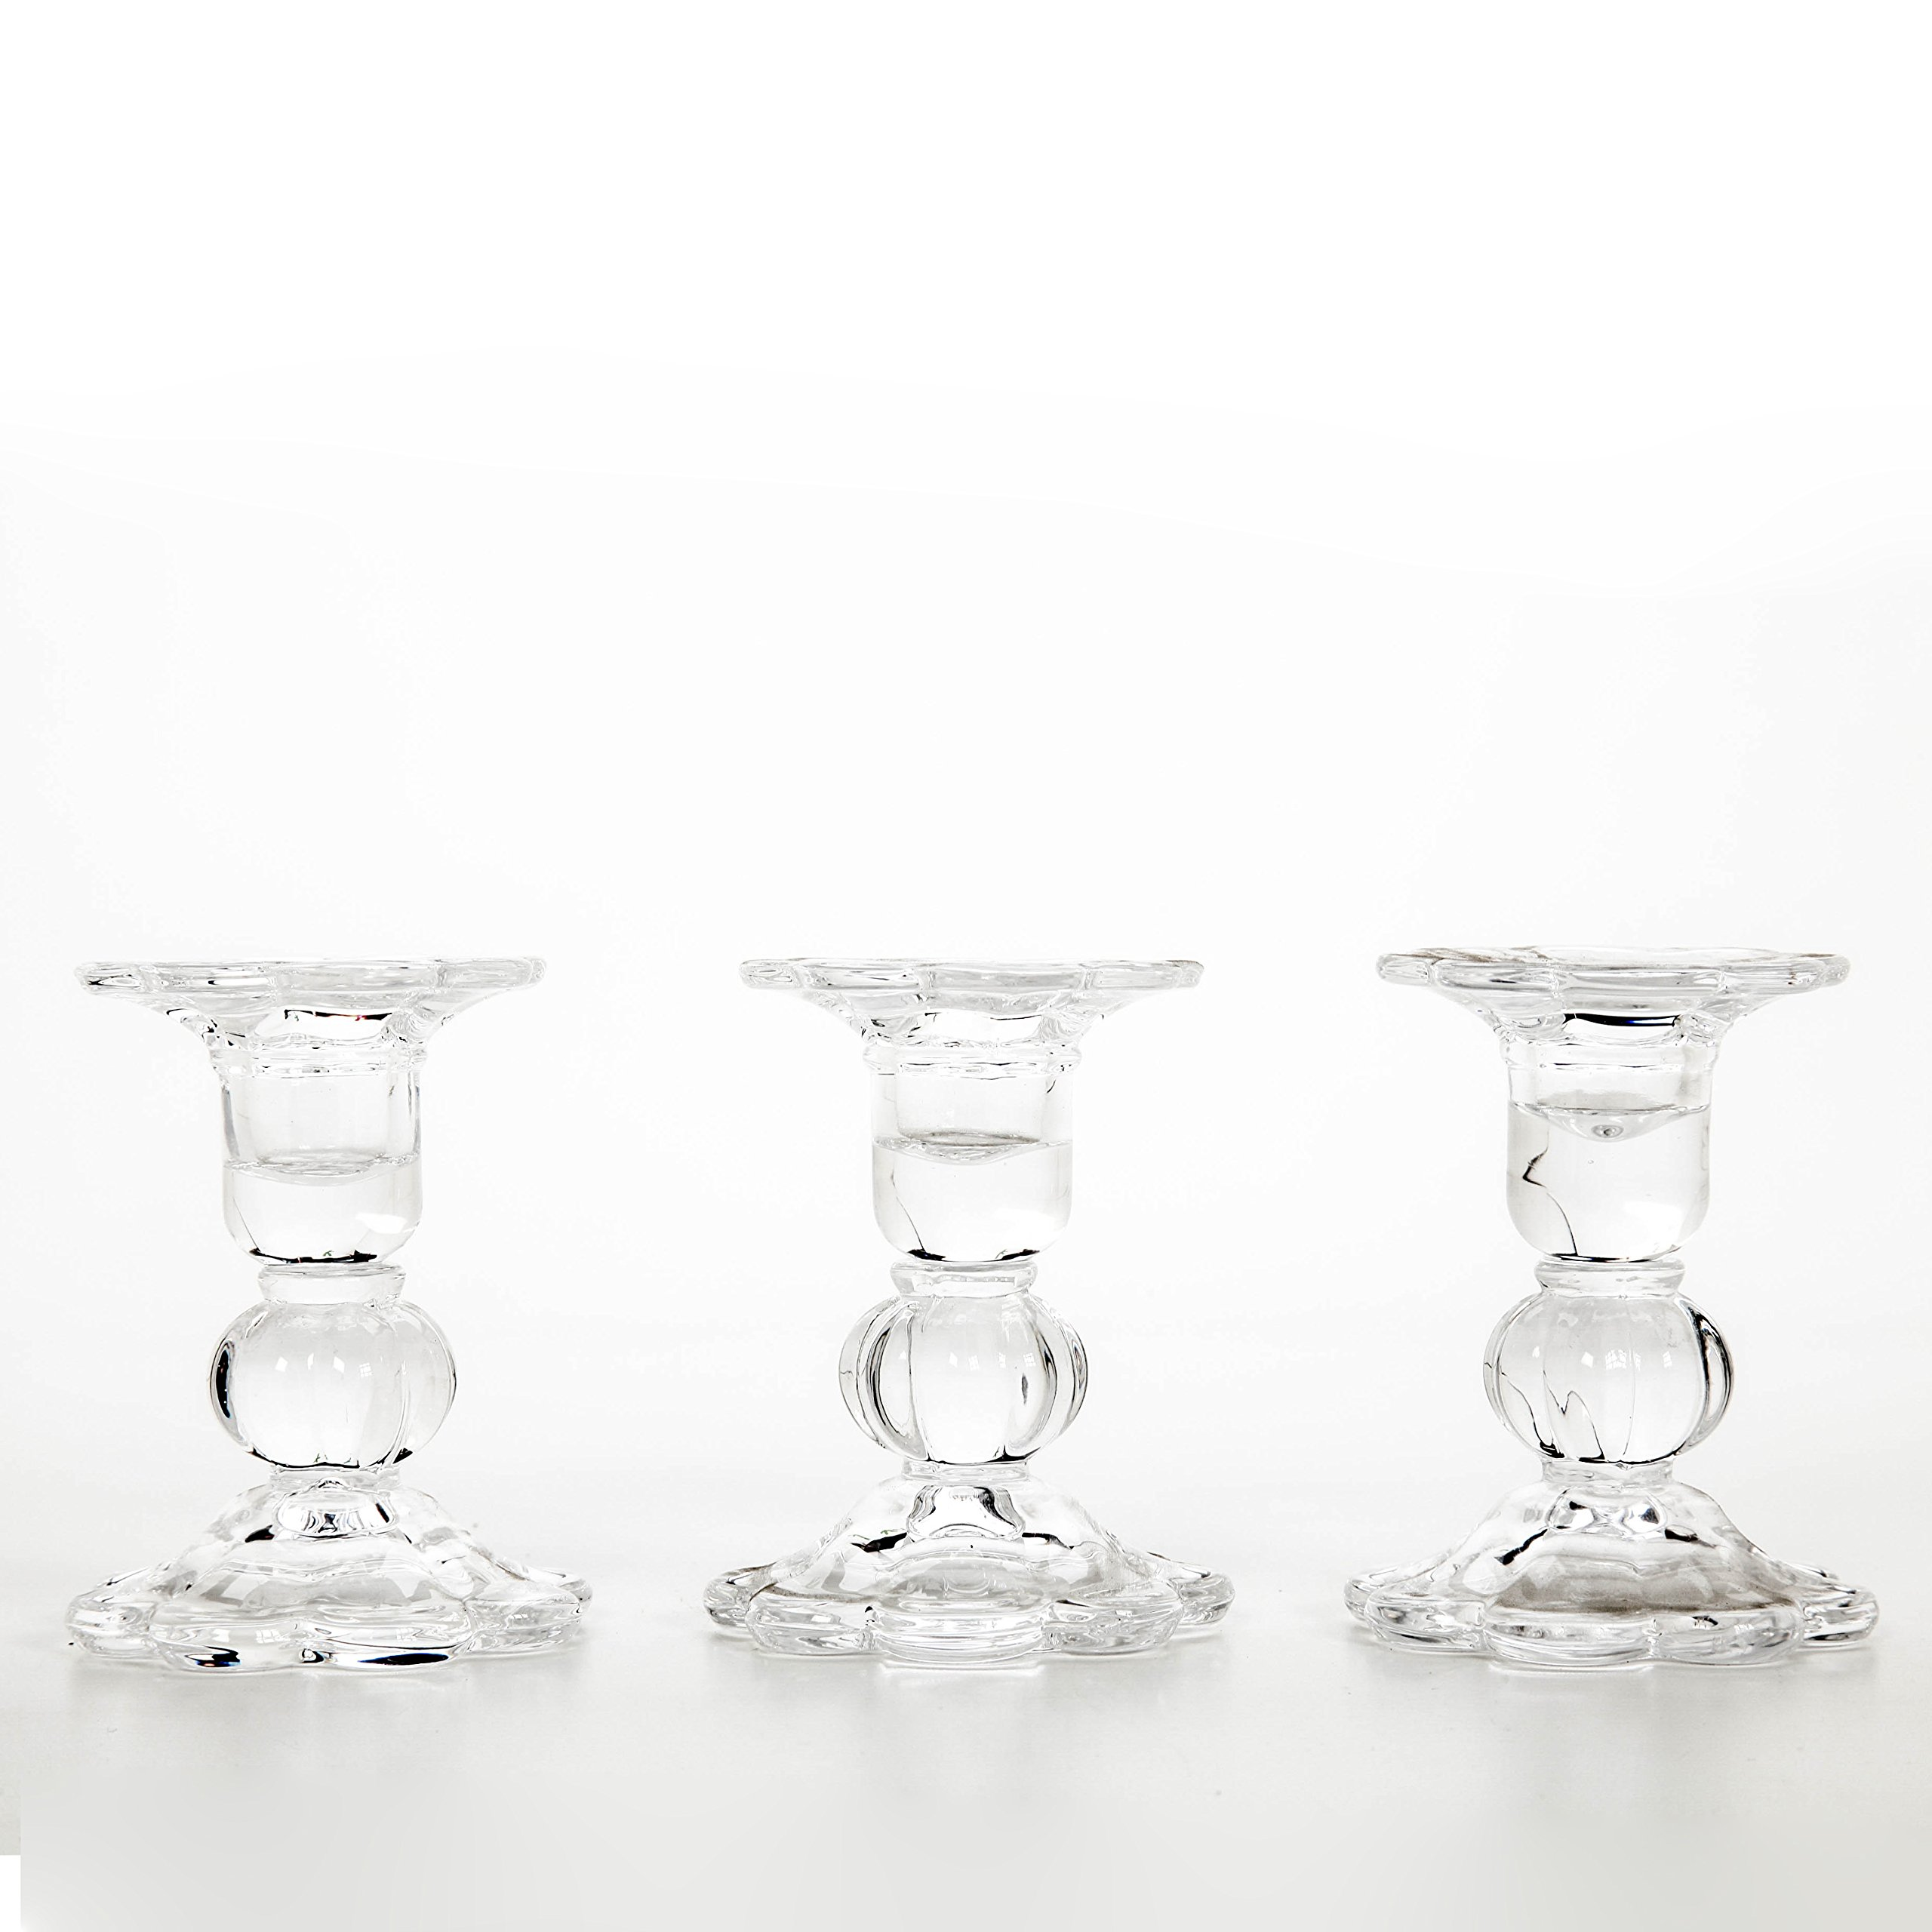 Hosley Set of 3 Glass Taper Candle holders - 3.9'' High. Classic Decor for Wedding, Party, Gifts. Bulk Buy, Spa, Aromatherapy W1